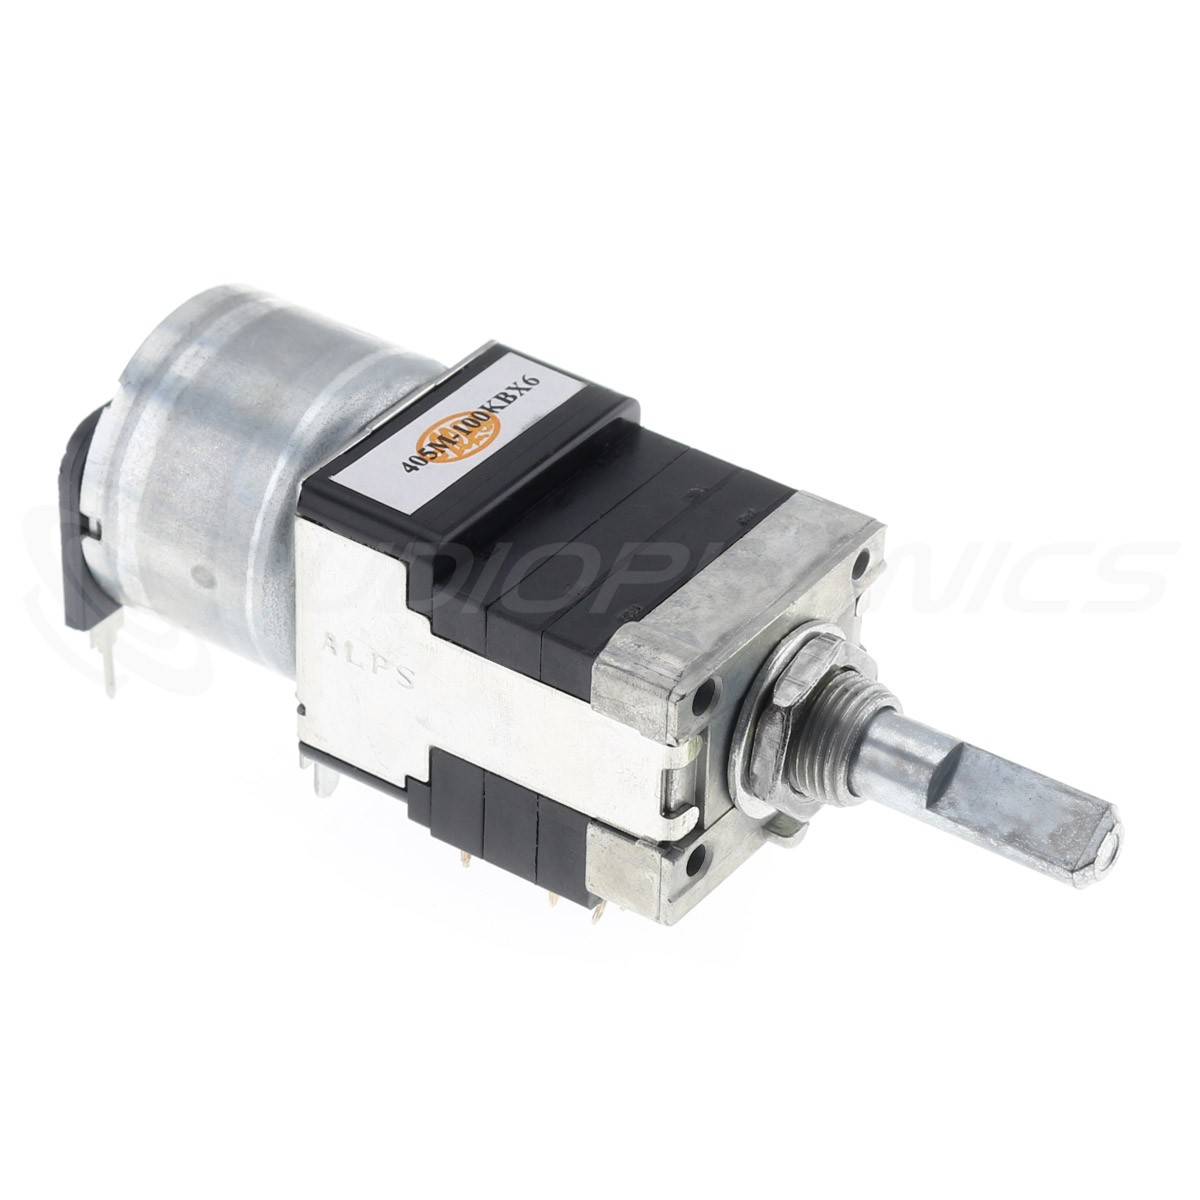 ALPS RK16816MG 6 Way Logarithmic Motorized Potentiometer 100k